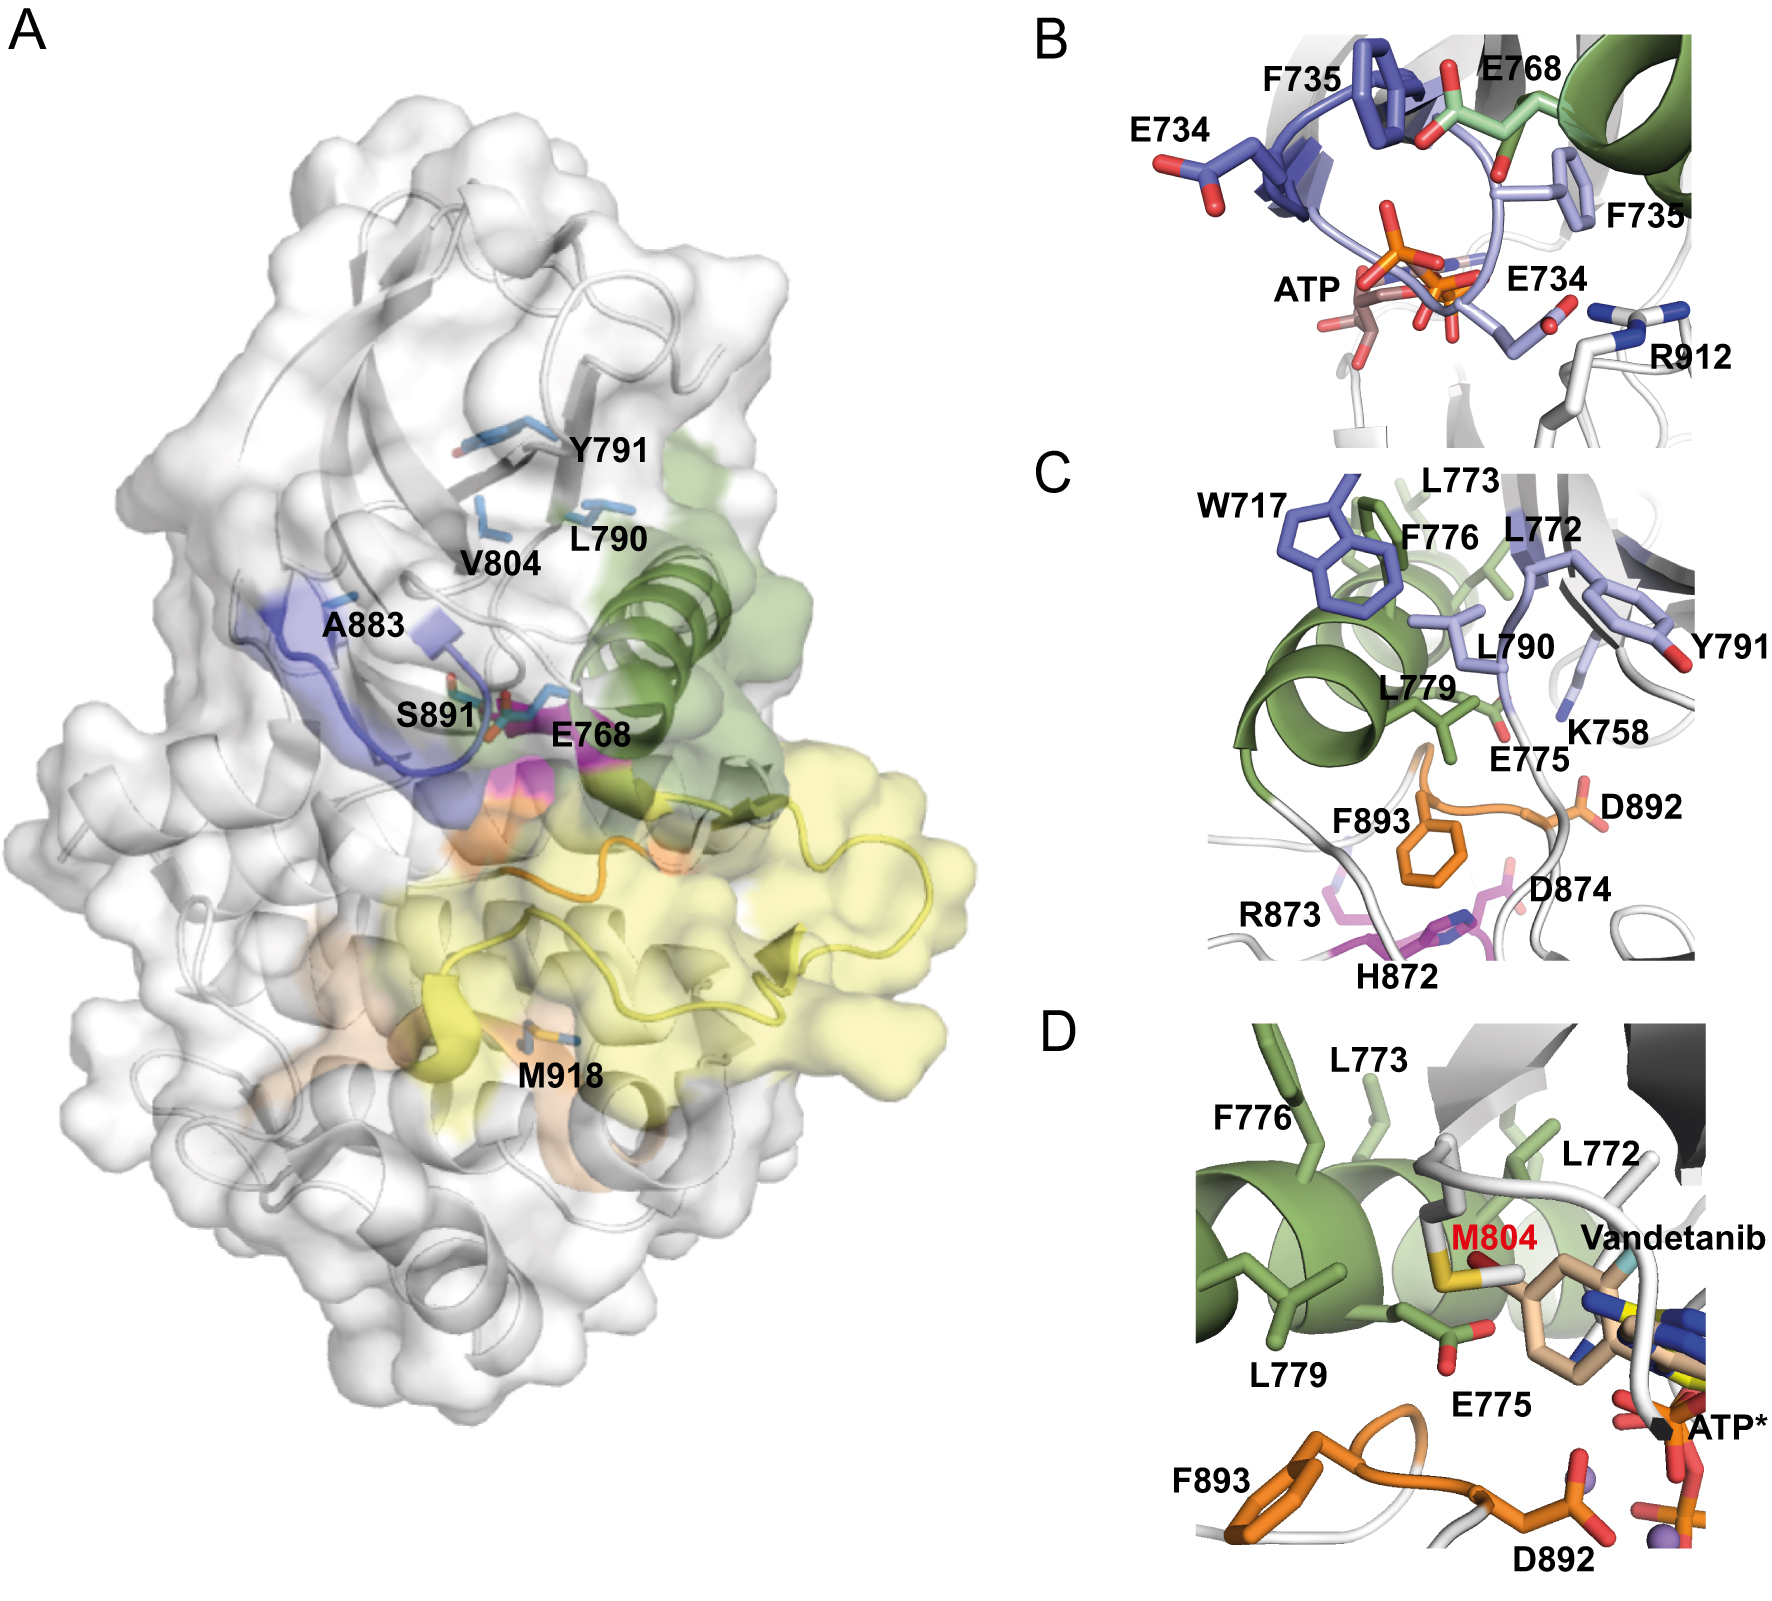 Structure and function of RET in multiple endocrine neoplasia type 2